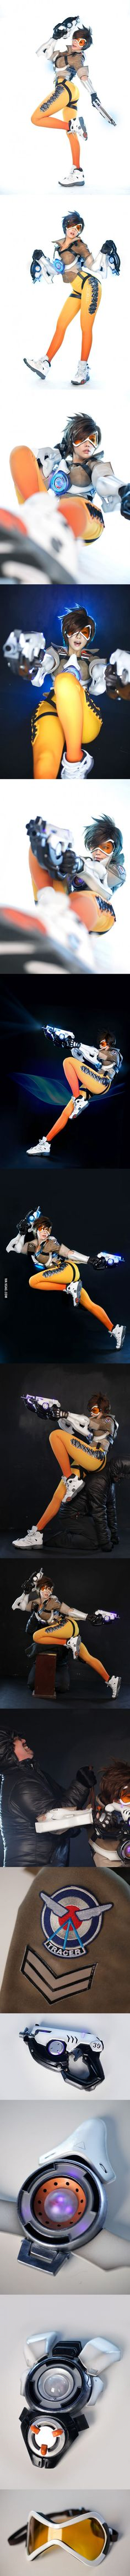 Tasha and her dead-on Tracer Cosplay - 9GAG